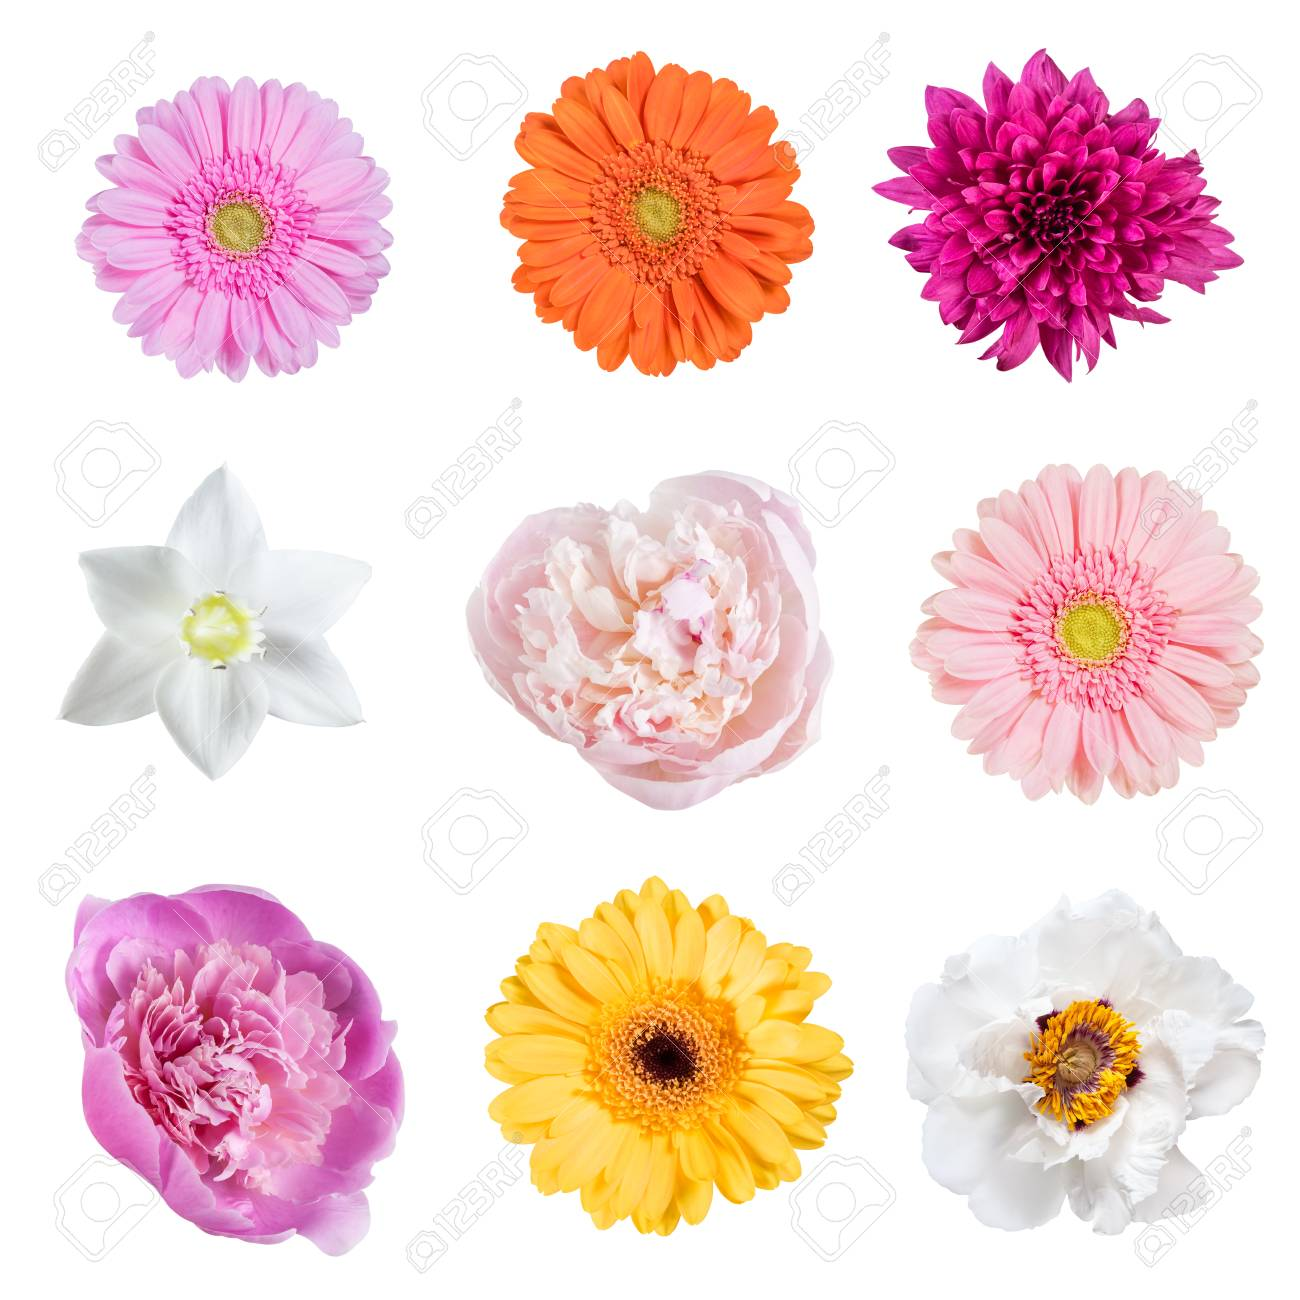 Different Beautiful Spring Flowers Isolated On White Background For